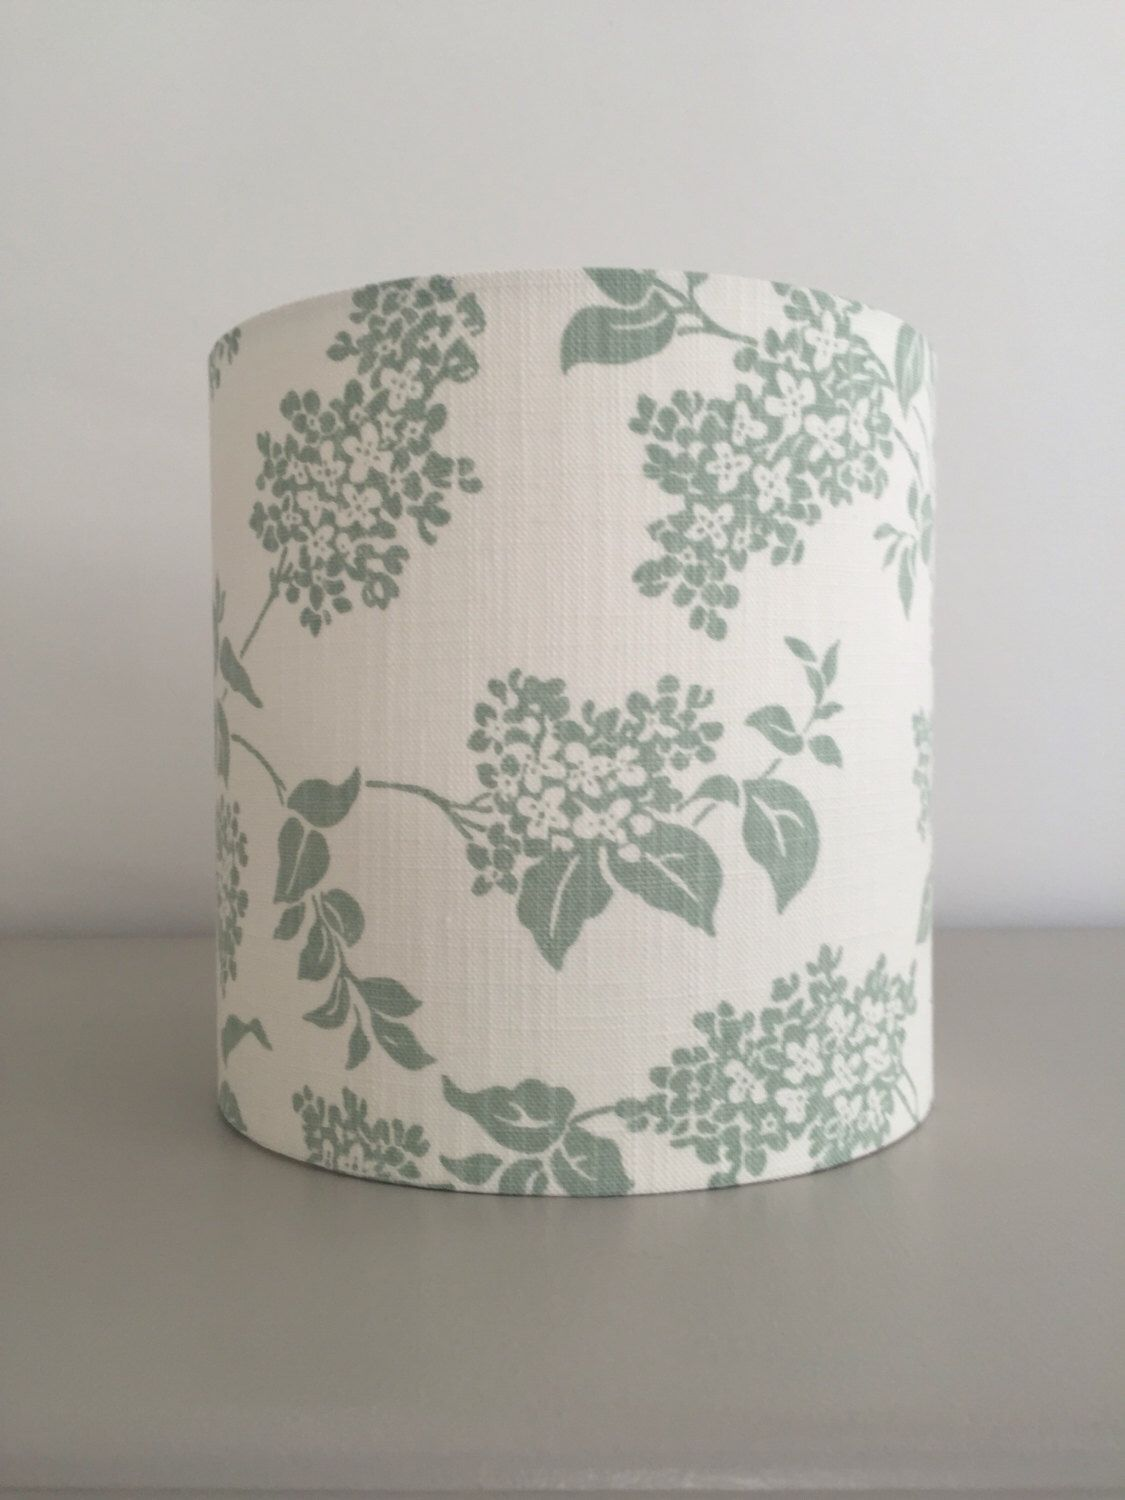 Drum lampshade laura ashley pale green floral fabric shade laura a personal favourite from my etsy shop httpsetsy floral fabriclaura ashleylampshadesdrumsetsy shoplamp shadesdrum aloadofball Images